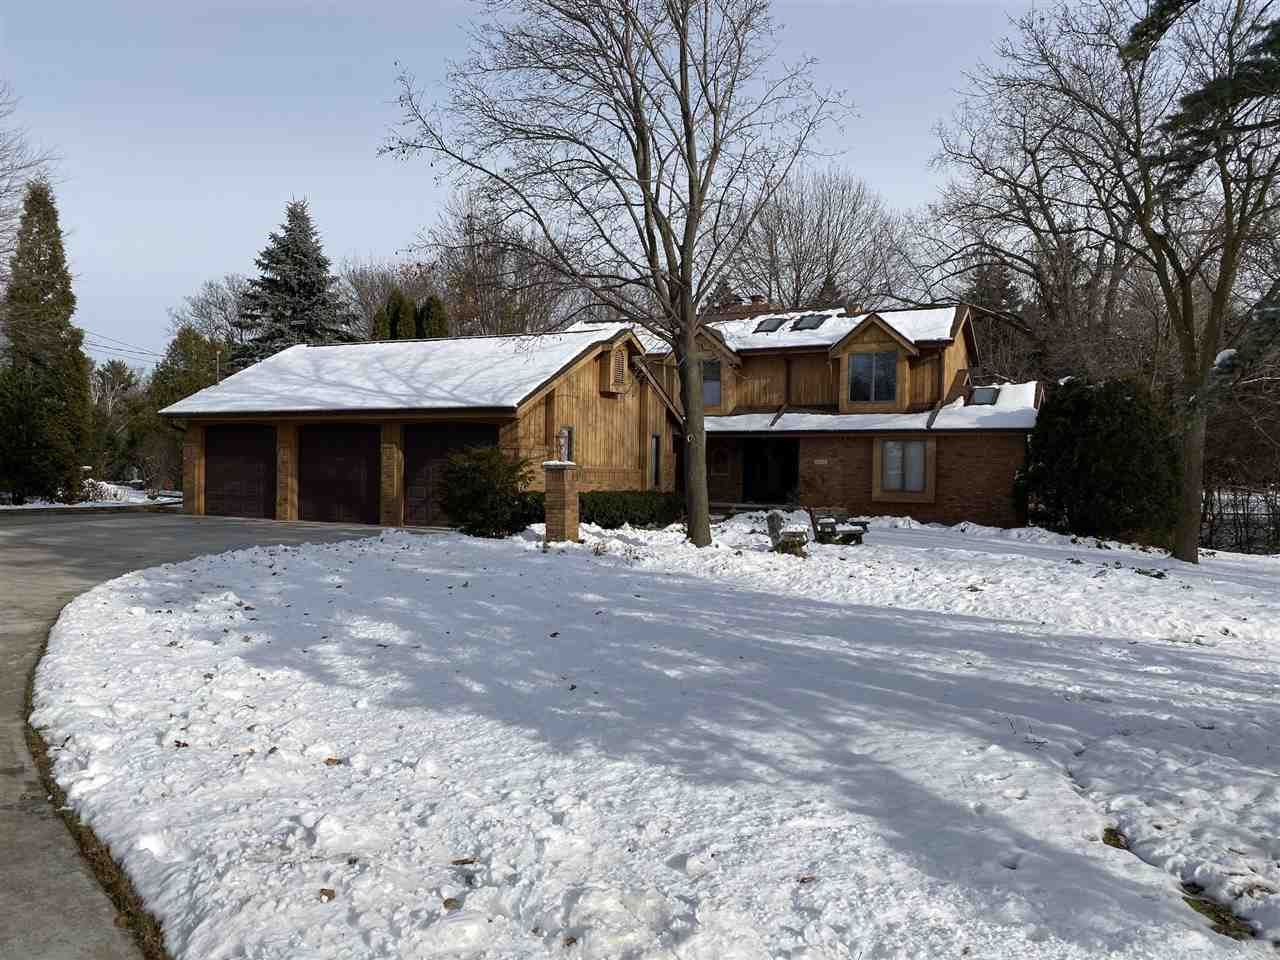 Photo for 2110 PALISADES Drive, APPLETON, WI 54915 (MLS # 50211506)